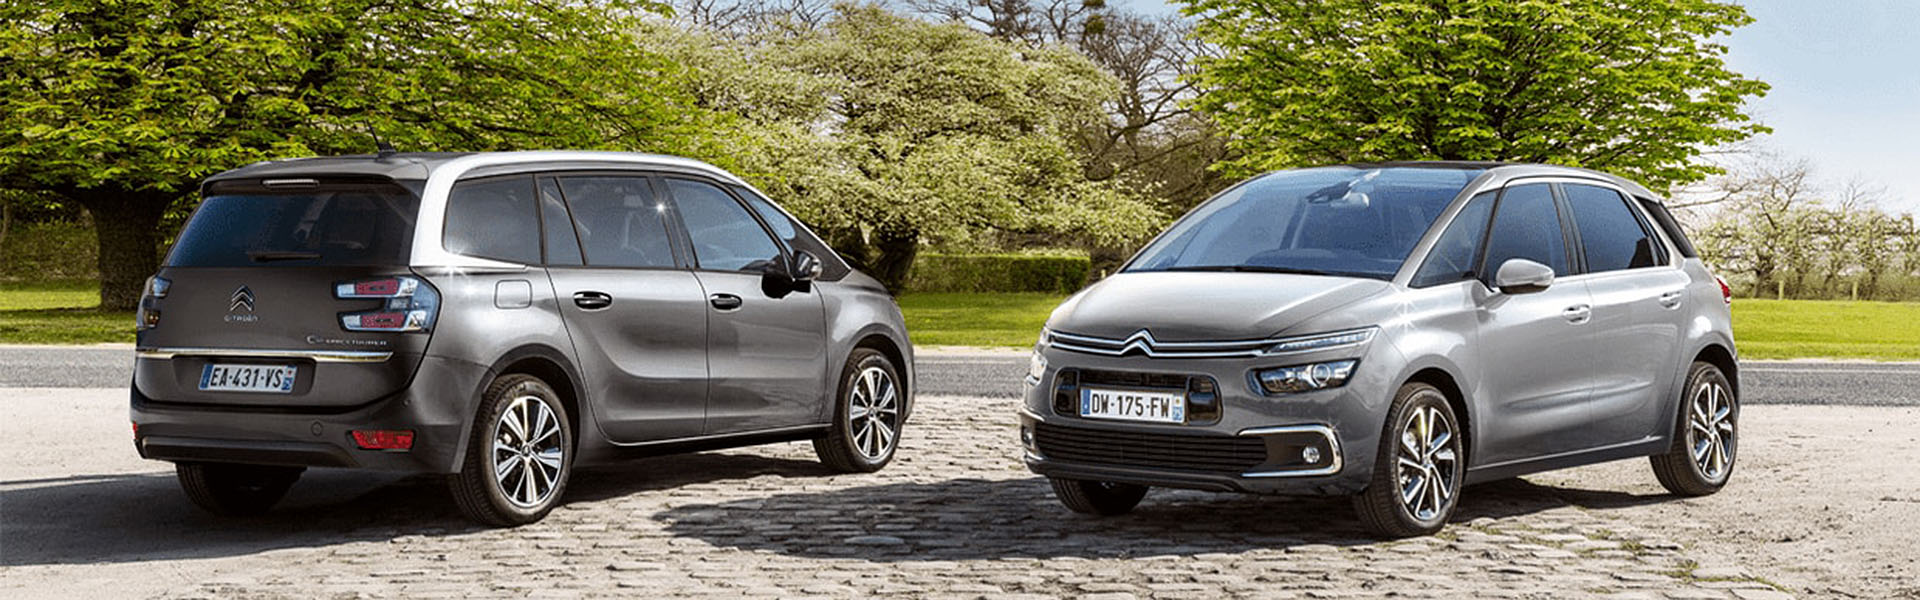 Citroen C4 Spacetourer Land